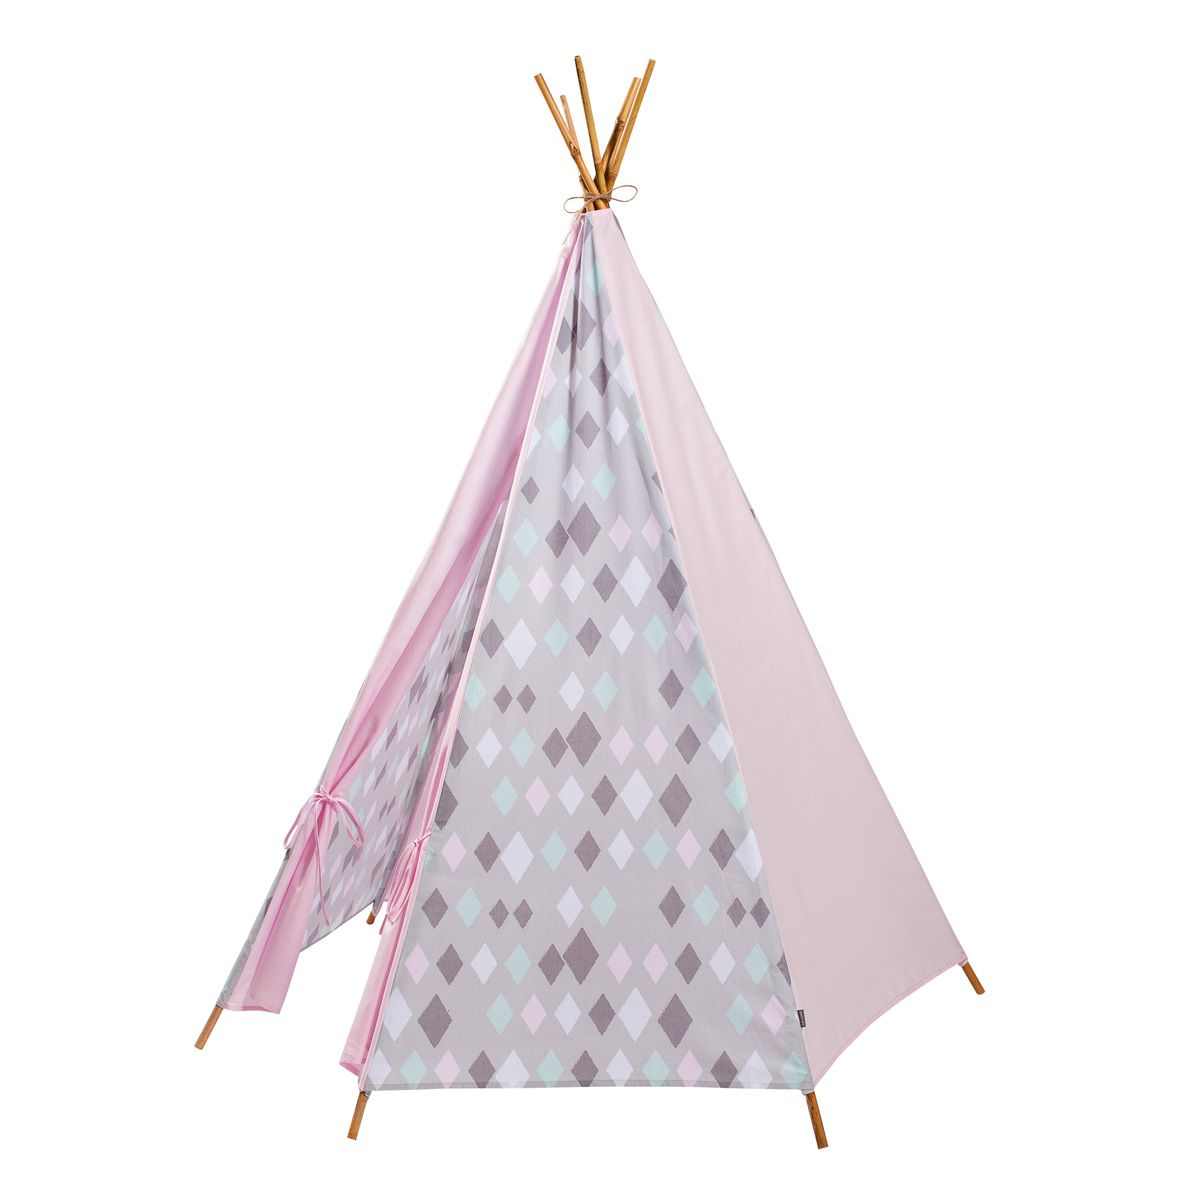 tipi zelt 39 wieber 39 rauten rosa von kidsdepot kaufen bei. Black Bedroom Furniture Sets. Home Design Ideas